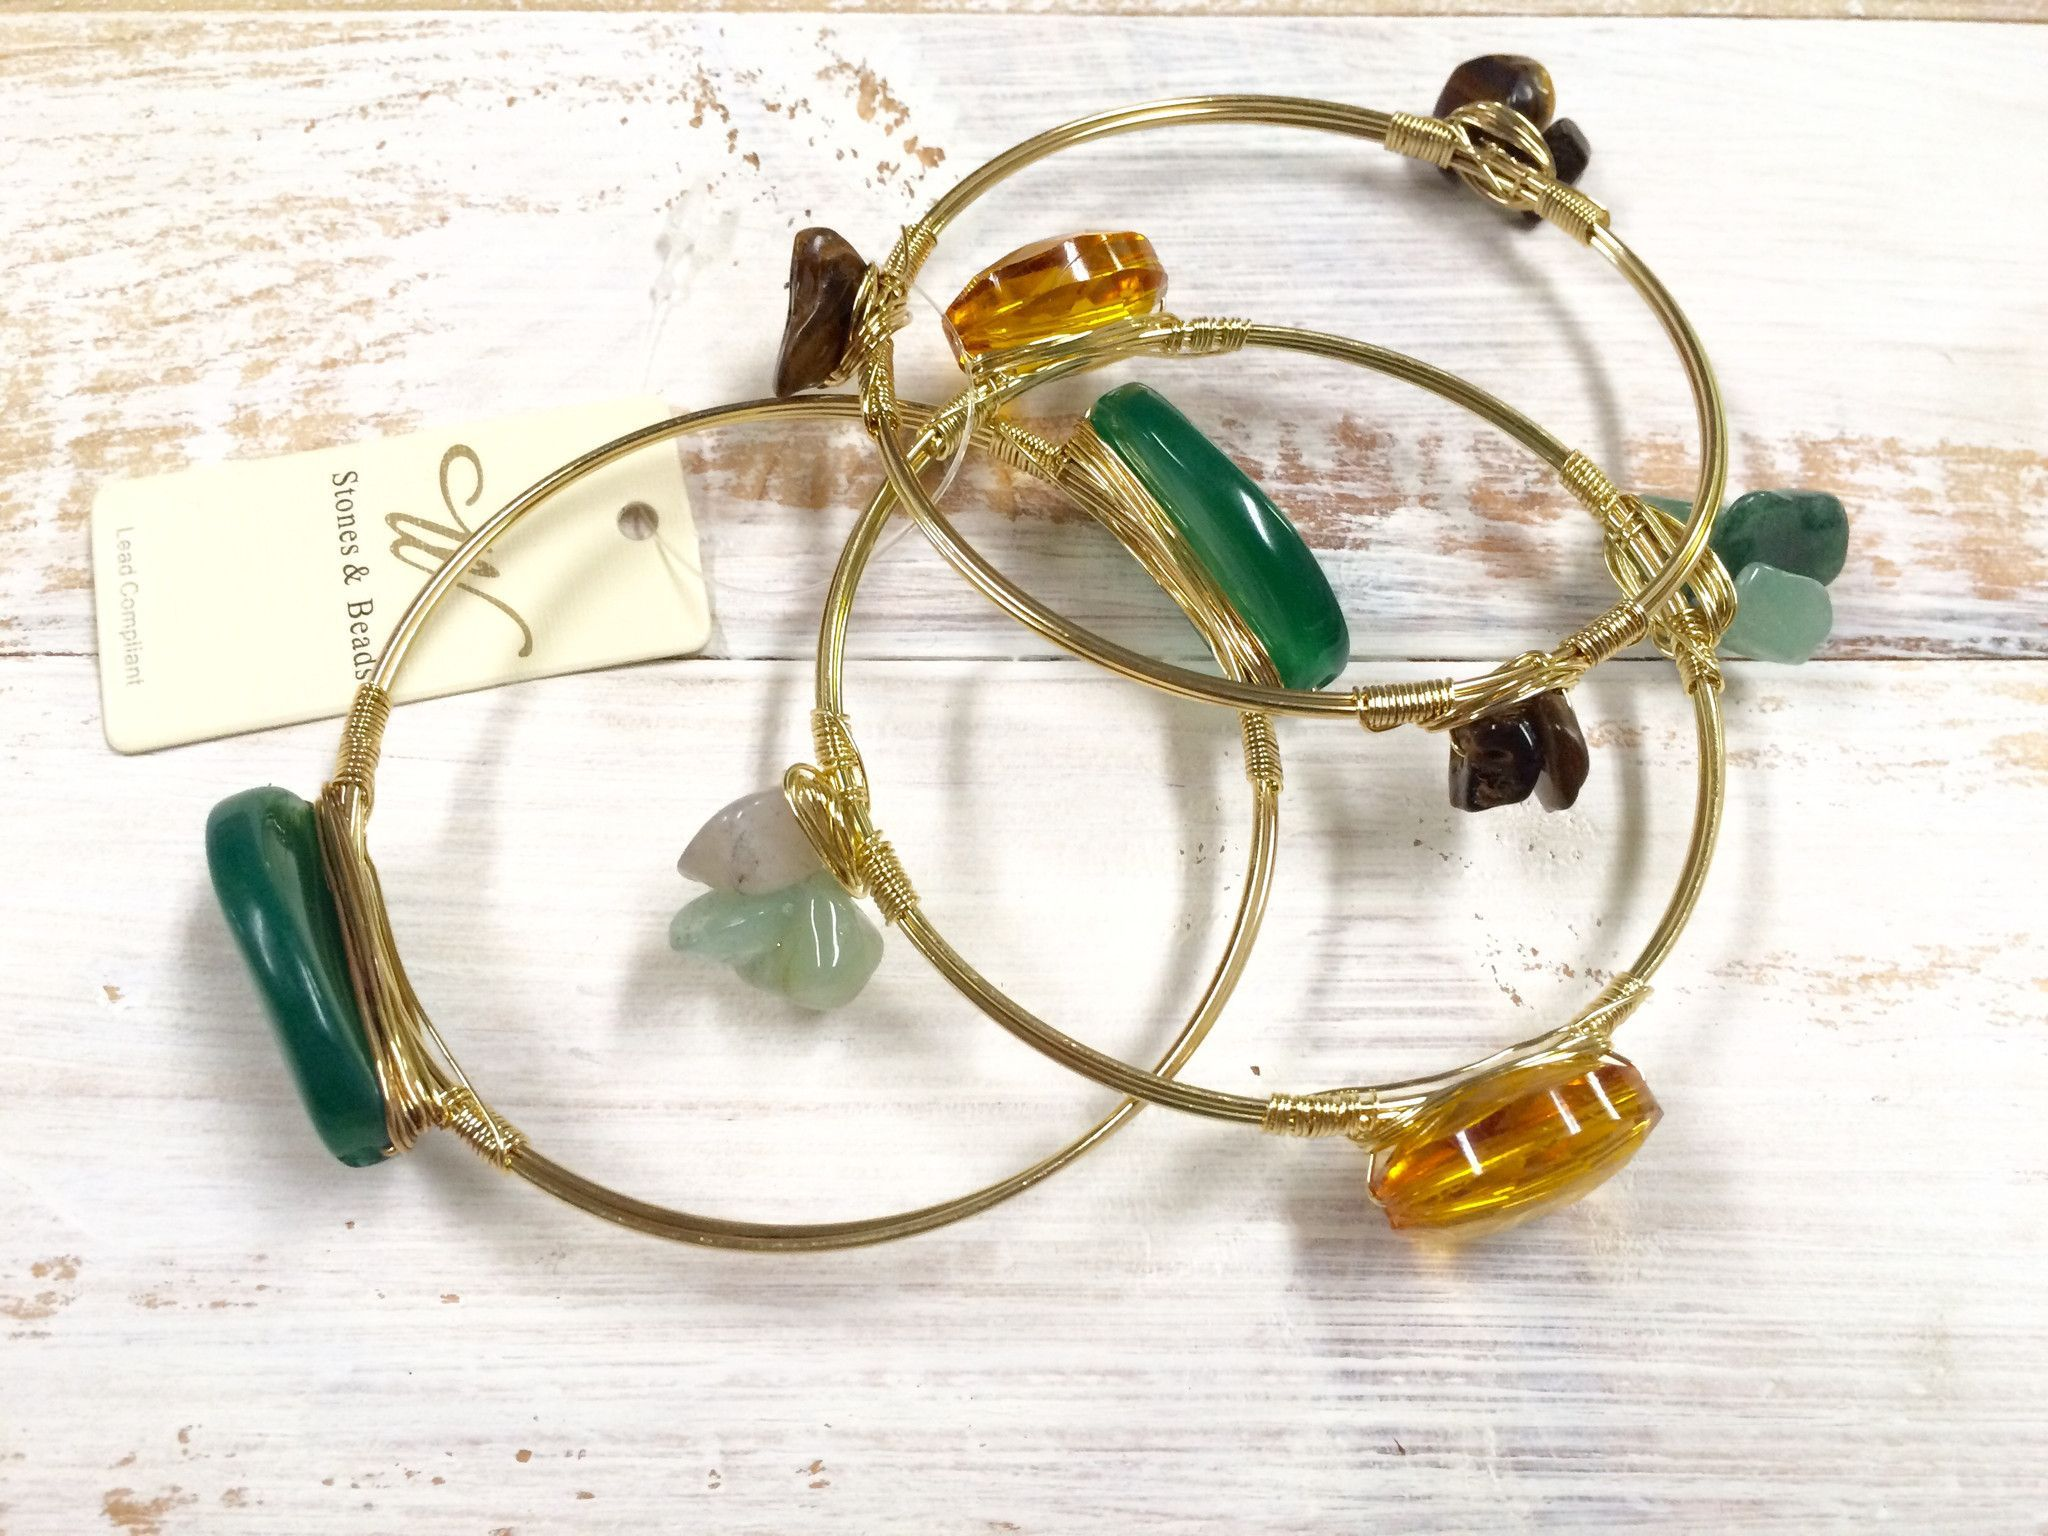 3 Piece Green Stone and Amber Crystal Bead Goldtone Wired Bangle Set